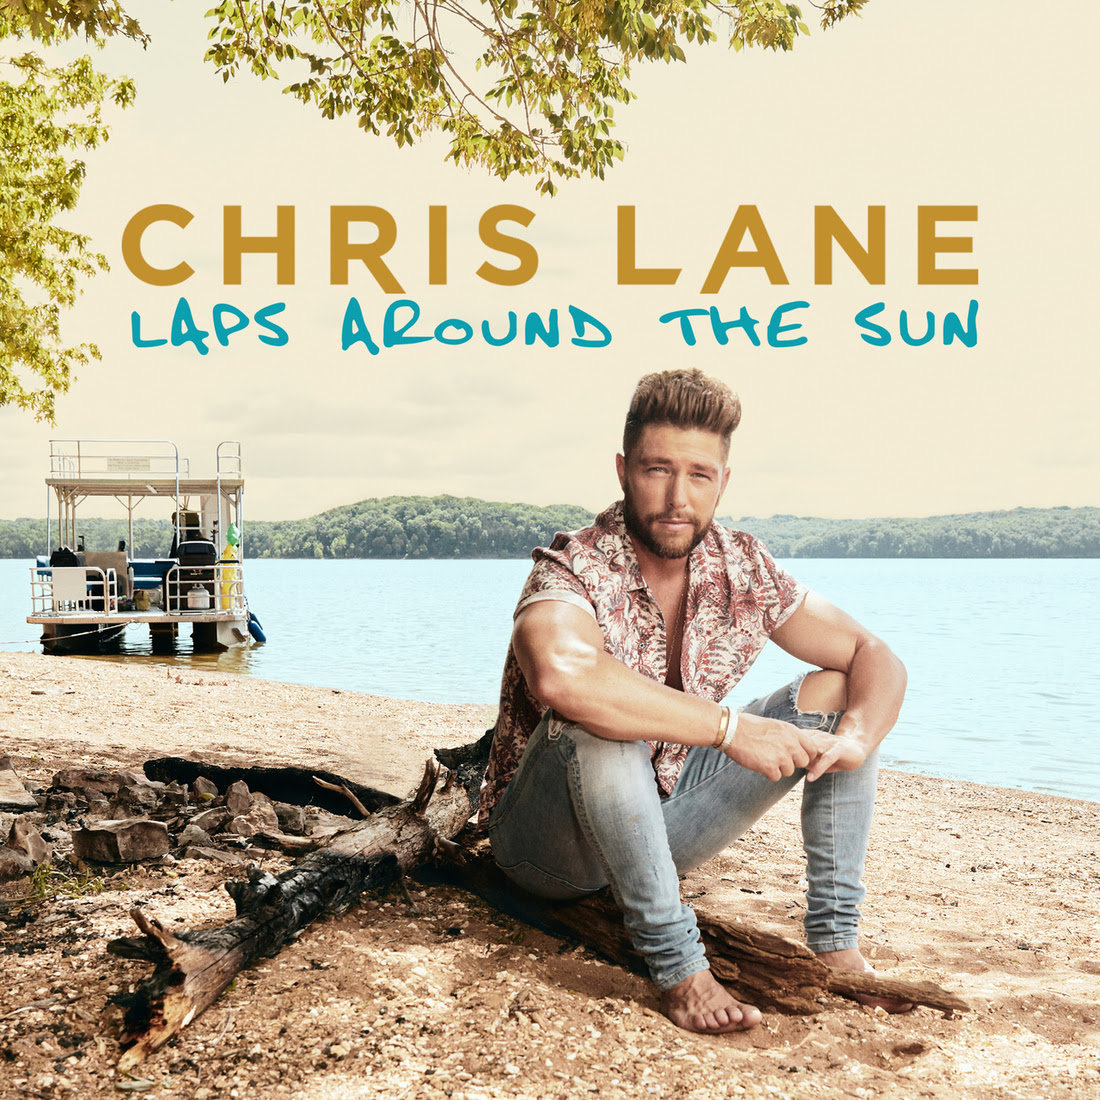 Chris lane official website chris lane to ignite nationwide laps around the sun tour this fall m4hsunfo